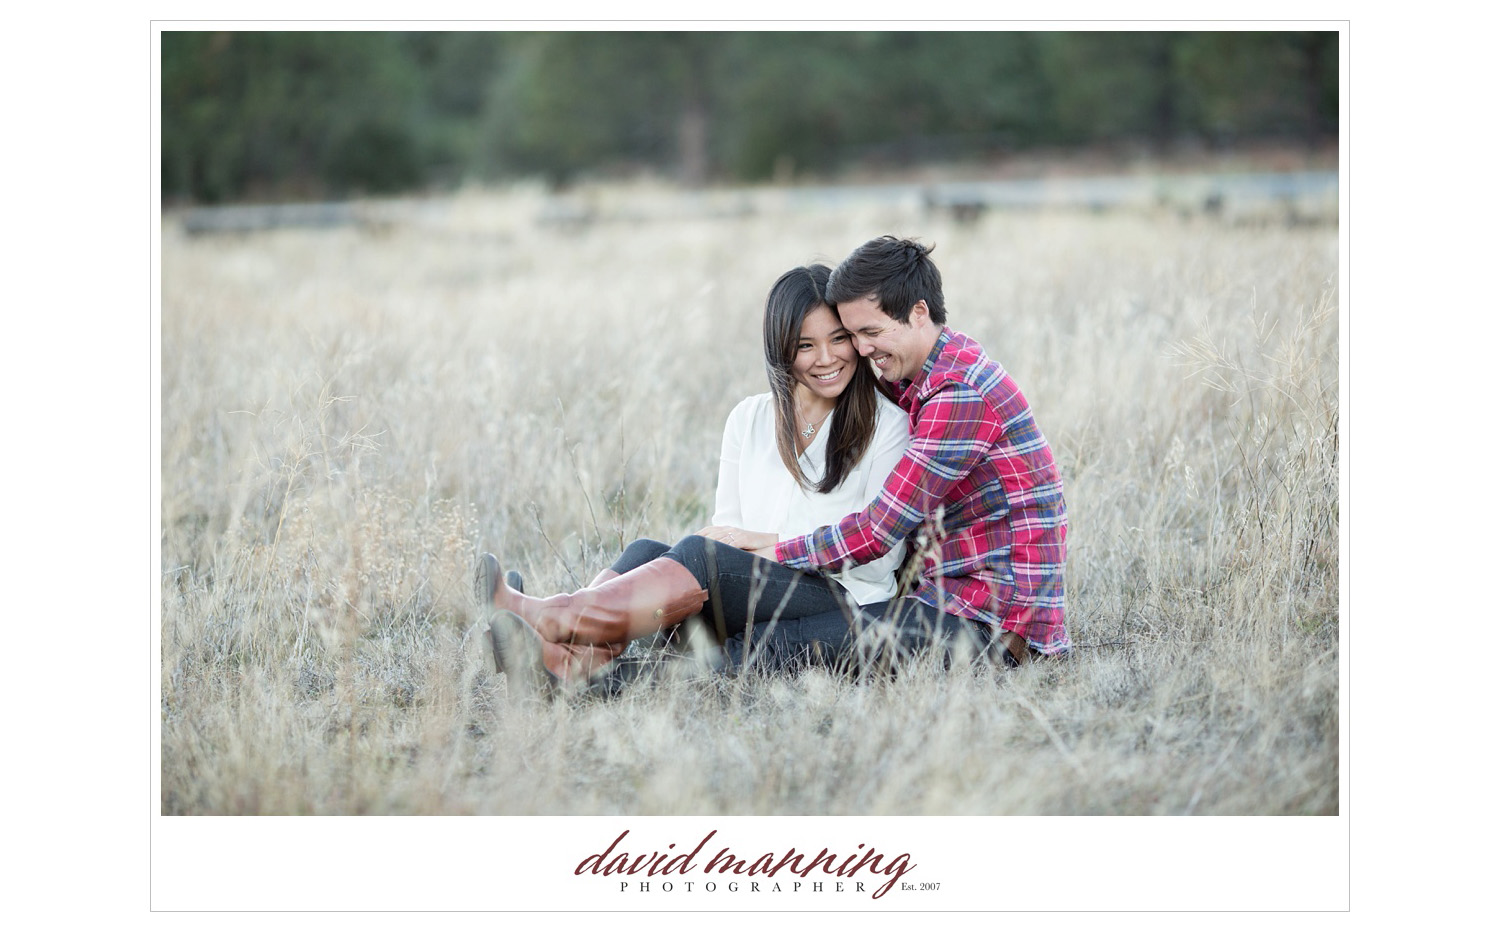 Del-Mar-Ramona-Julian-Engagement-Photos-David-Manning-Photographers-0015.jpg